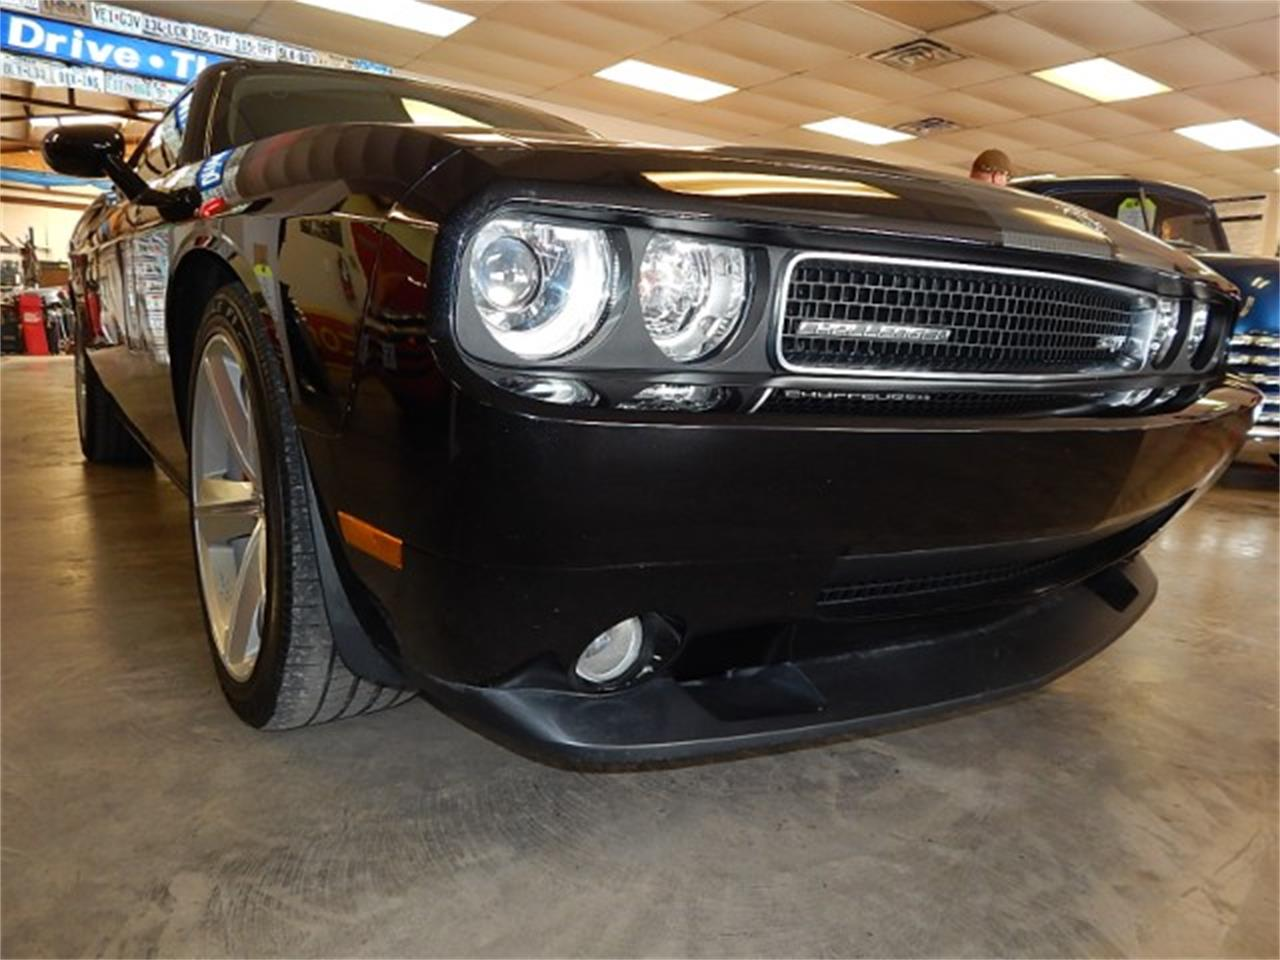 2008 Dodge Challenger for sale in Wichita Falls, TX – photo 30